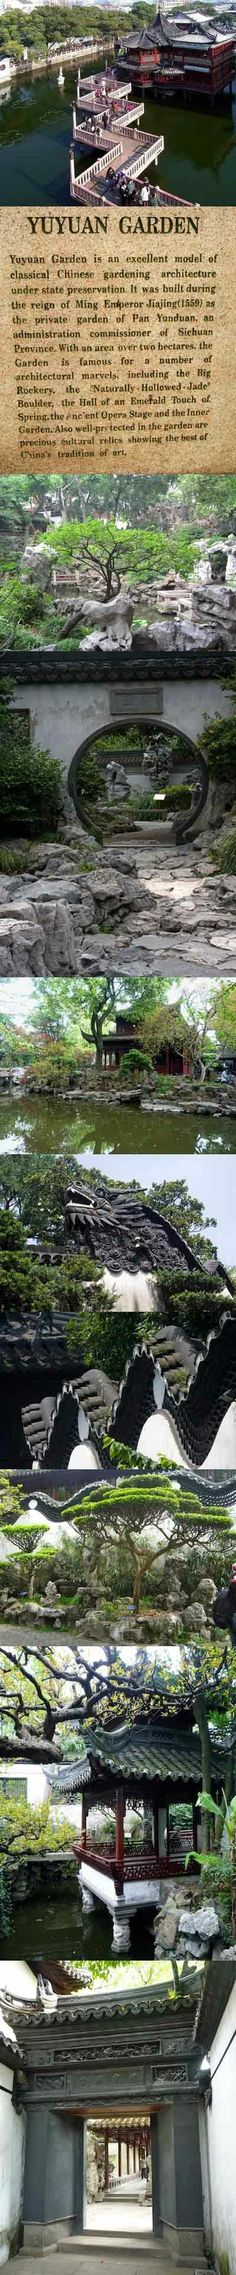 Yuyuan Garden is a famous classical garden located in Shanghai. It was finished in 1577 by a government officer of the Ming Dynasty (1368-1644) named Pan Yunduan. Yu in Chinese means pleasing and satisfying, and this garden was specially built for Pan's parents as a place for them to enjoy a tranquil and happy time in their old age.